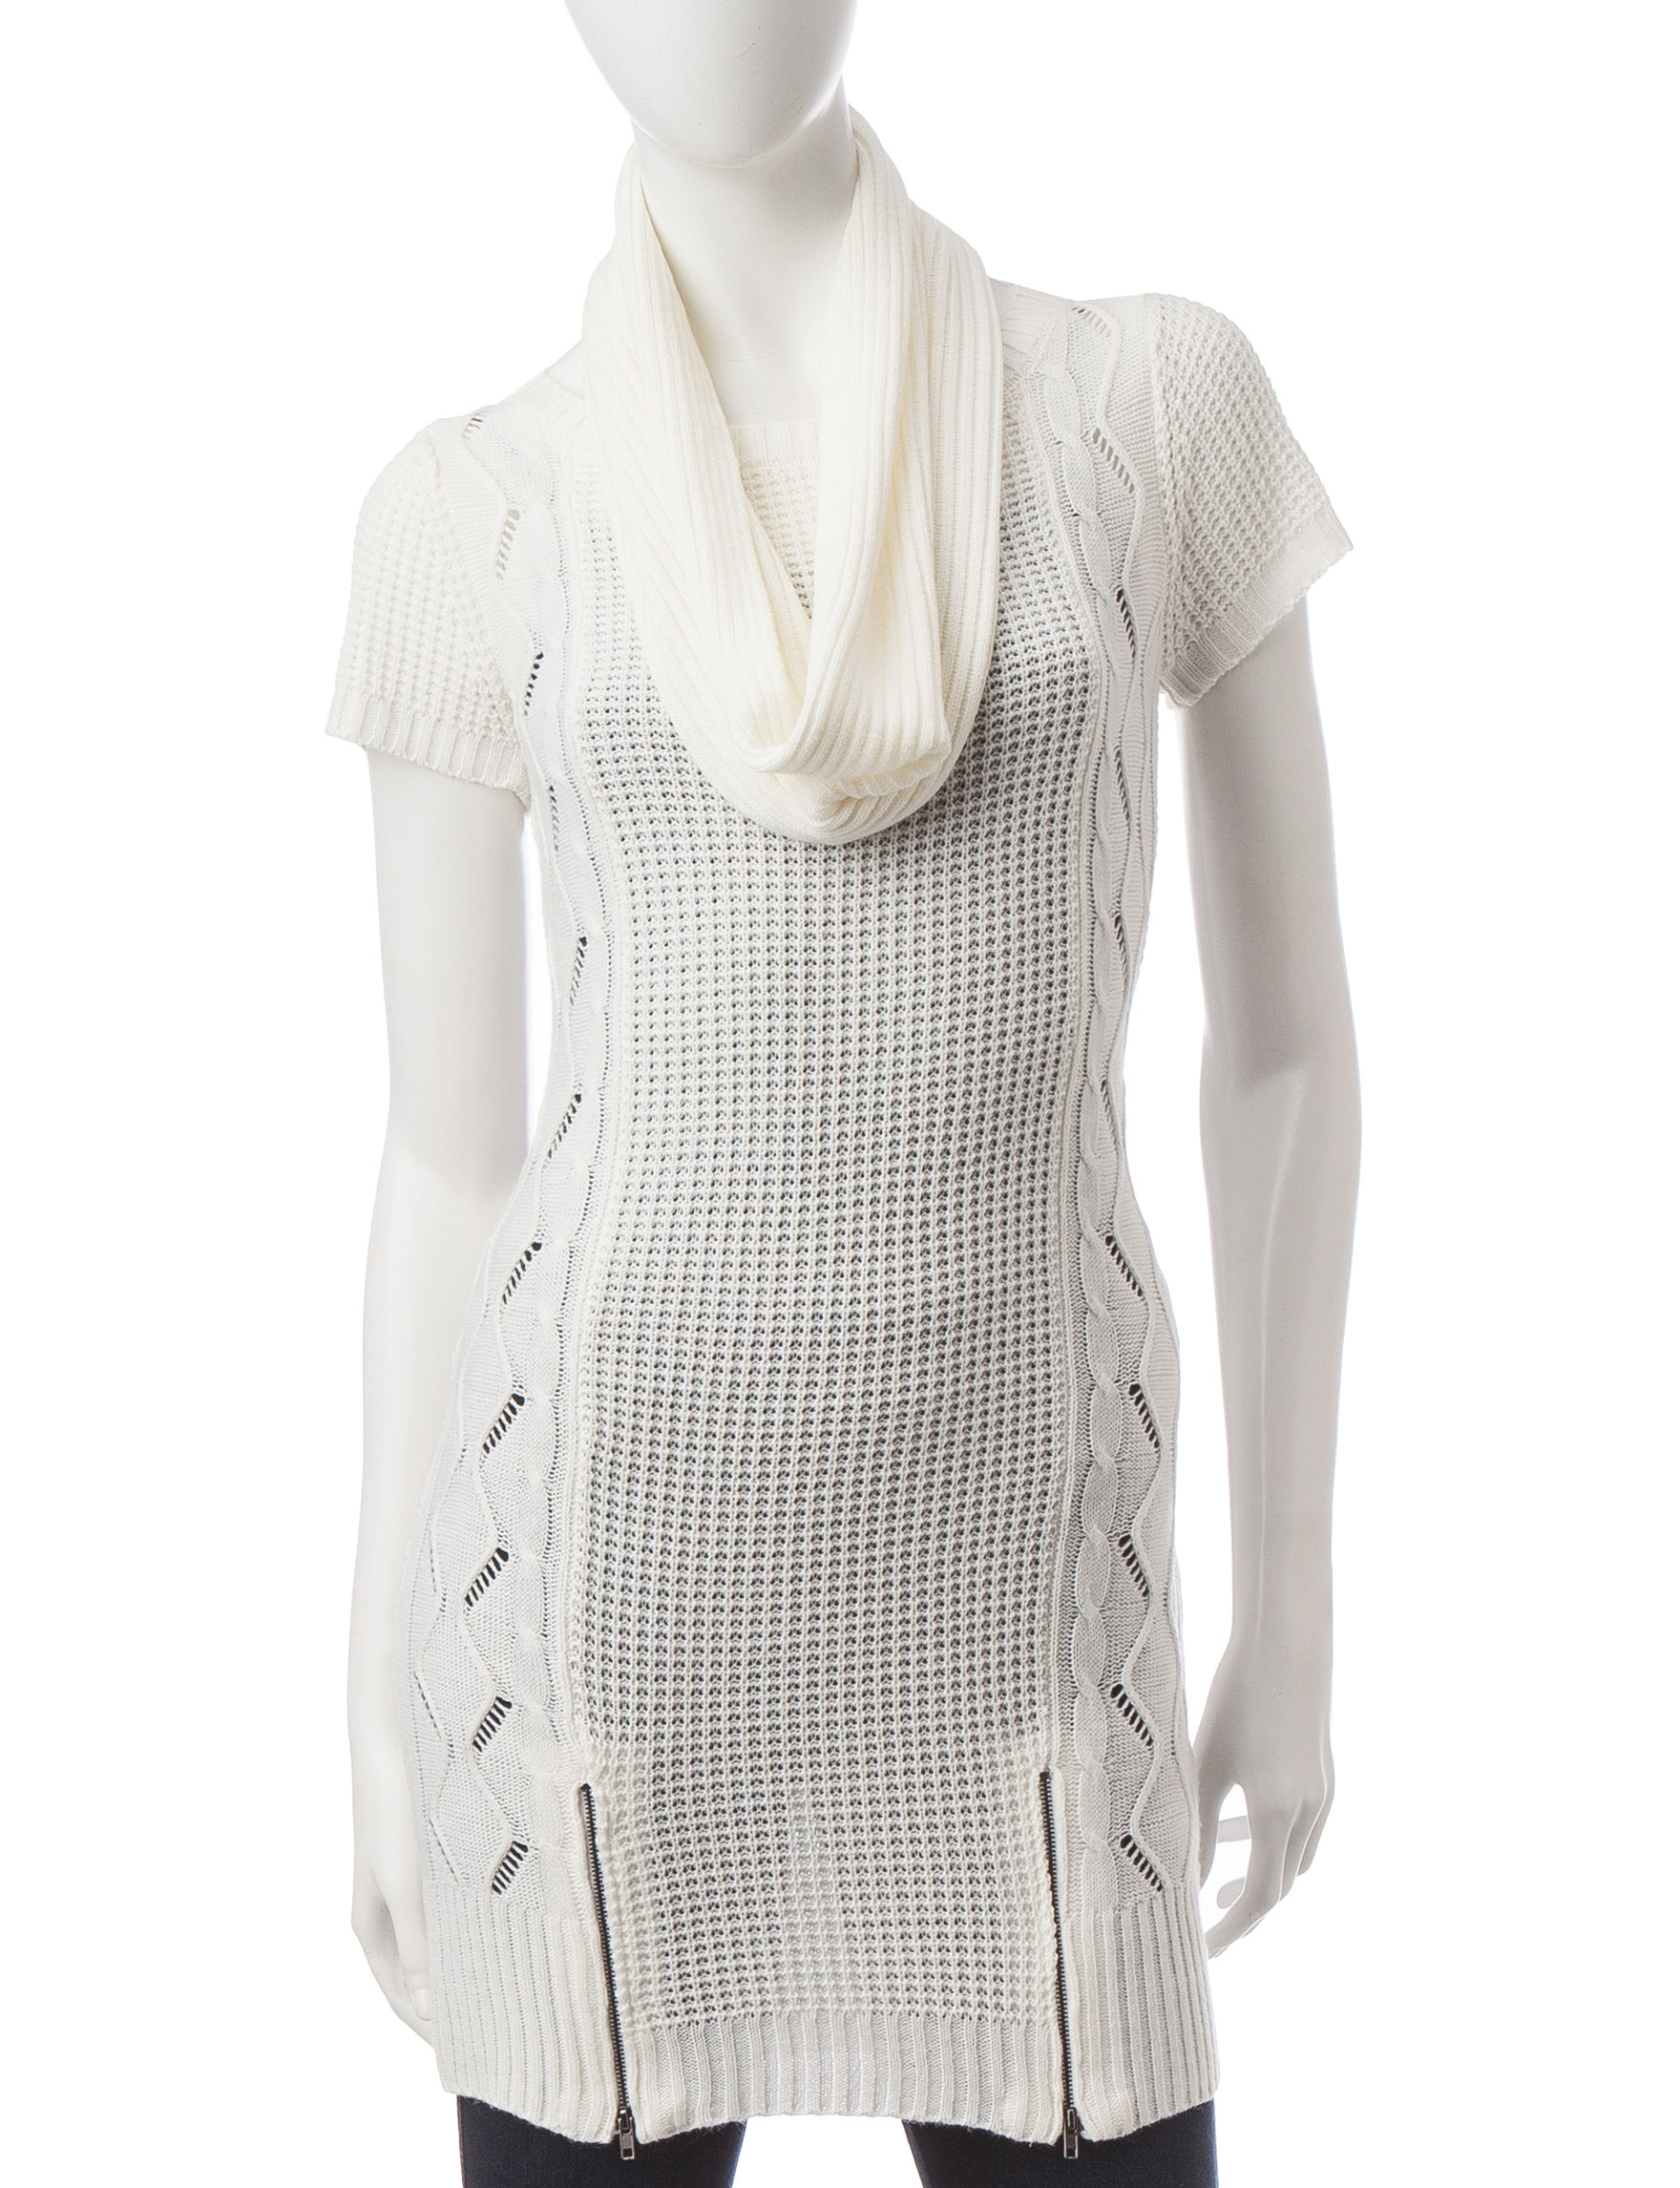 Made for Me to Look Amazing White Sweaters Tunics